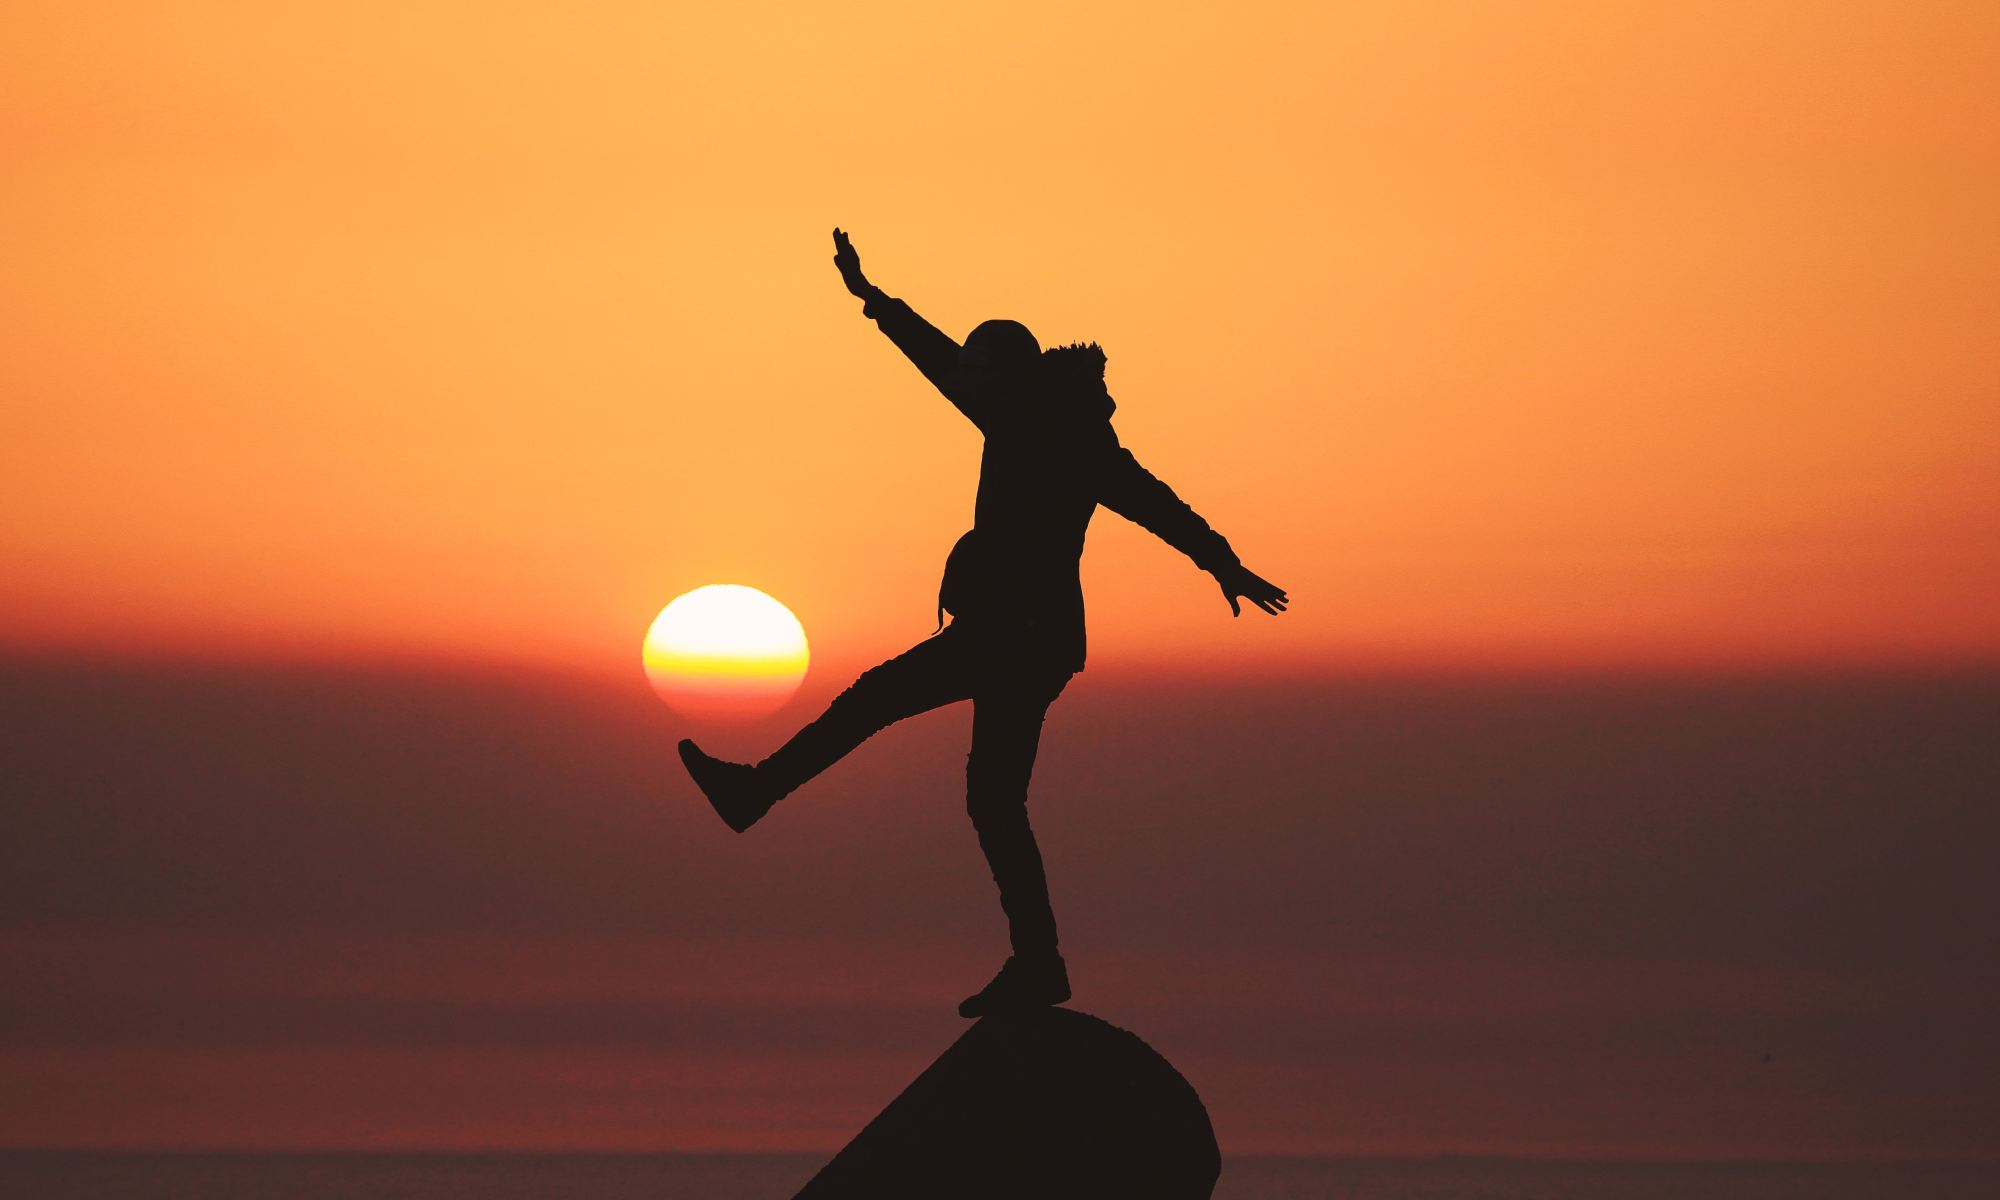 Silhouette photo of man standing on a rock practicing work-life balance